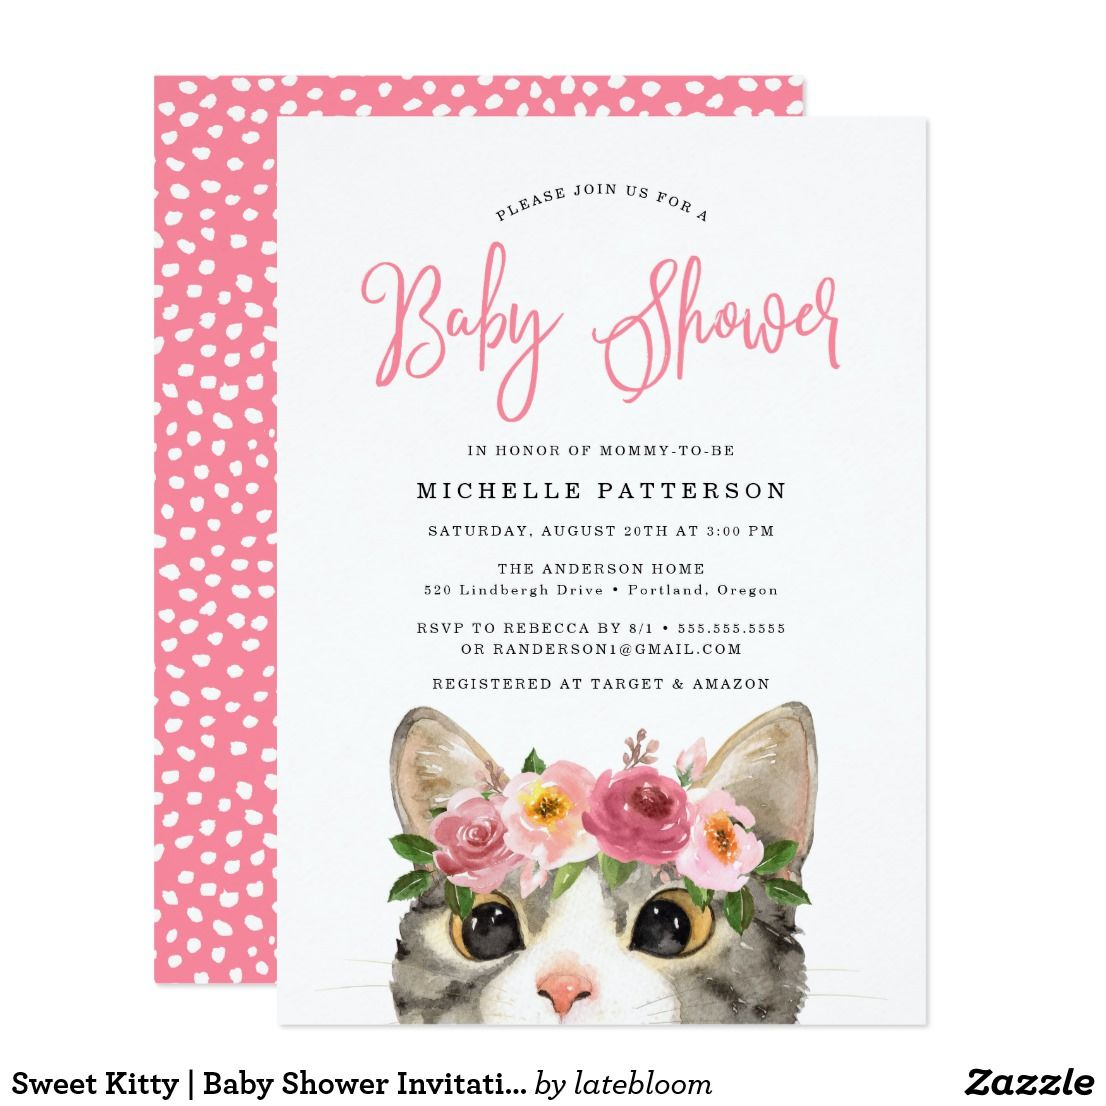 Sweet Kitty Baby Shower Invitation Zazzle Com Baby Shower Invitations Floral Baby Shower Invitations Baby Shower